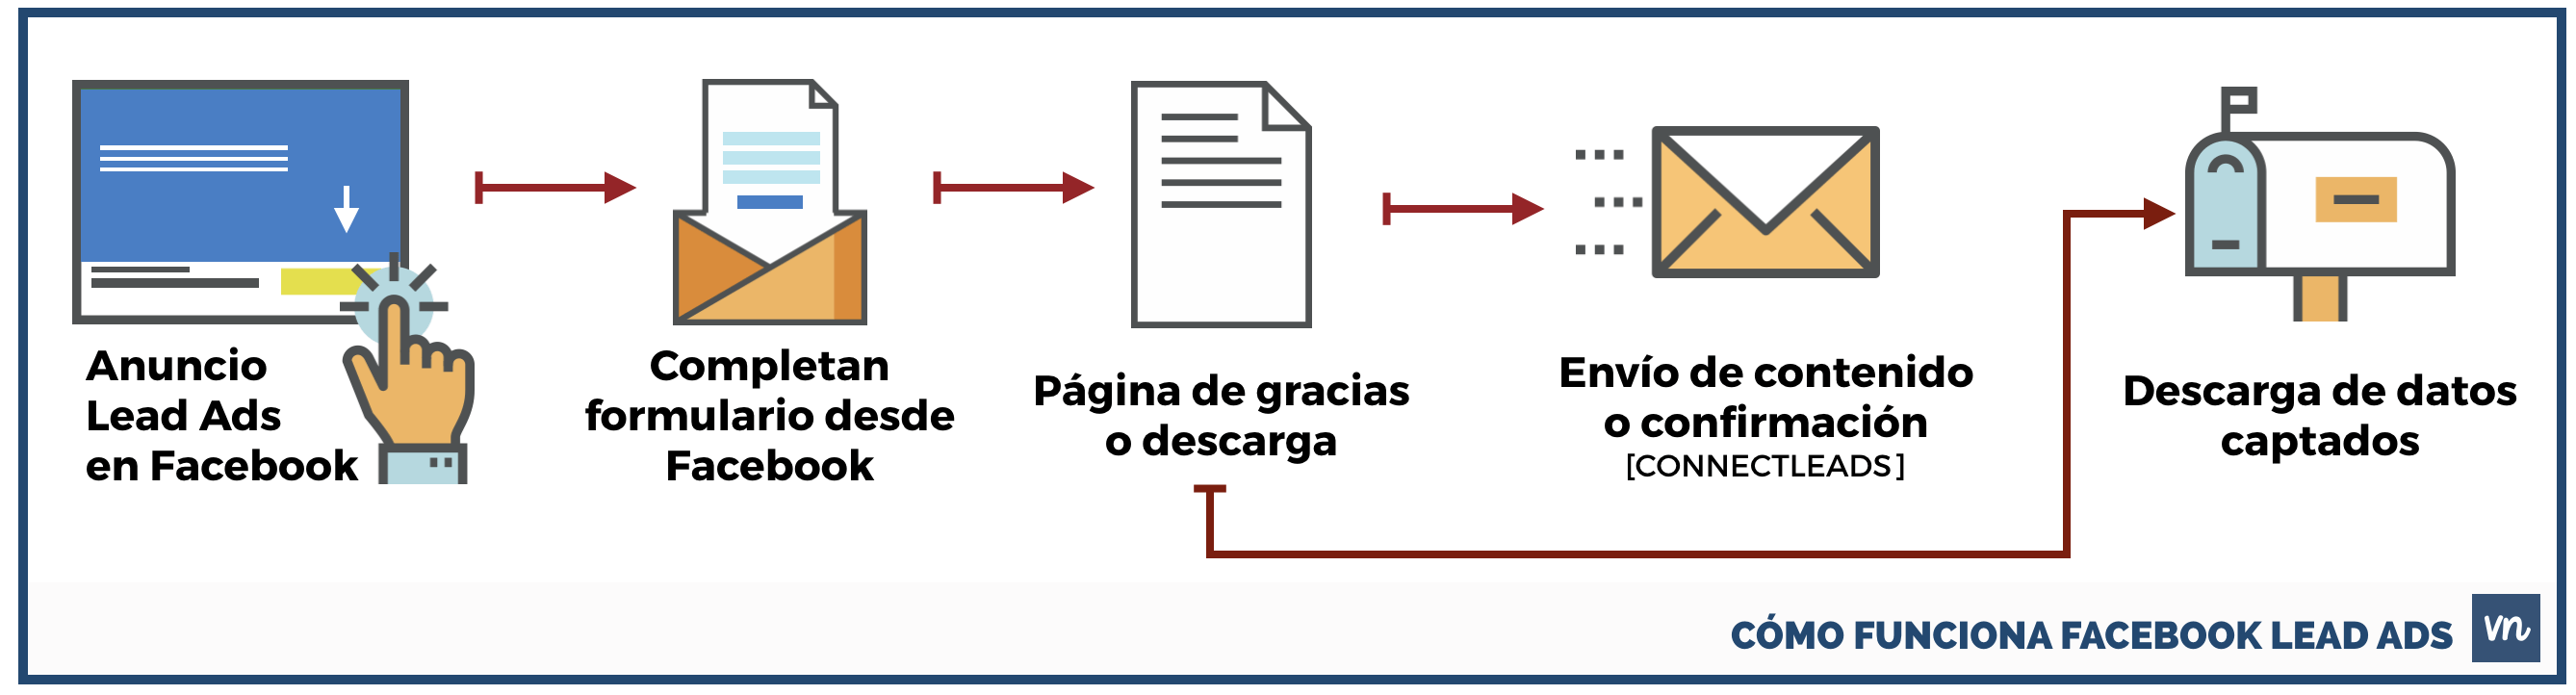 Proceso de facebook lead ads